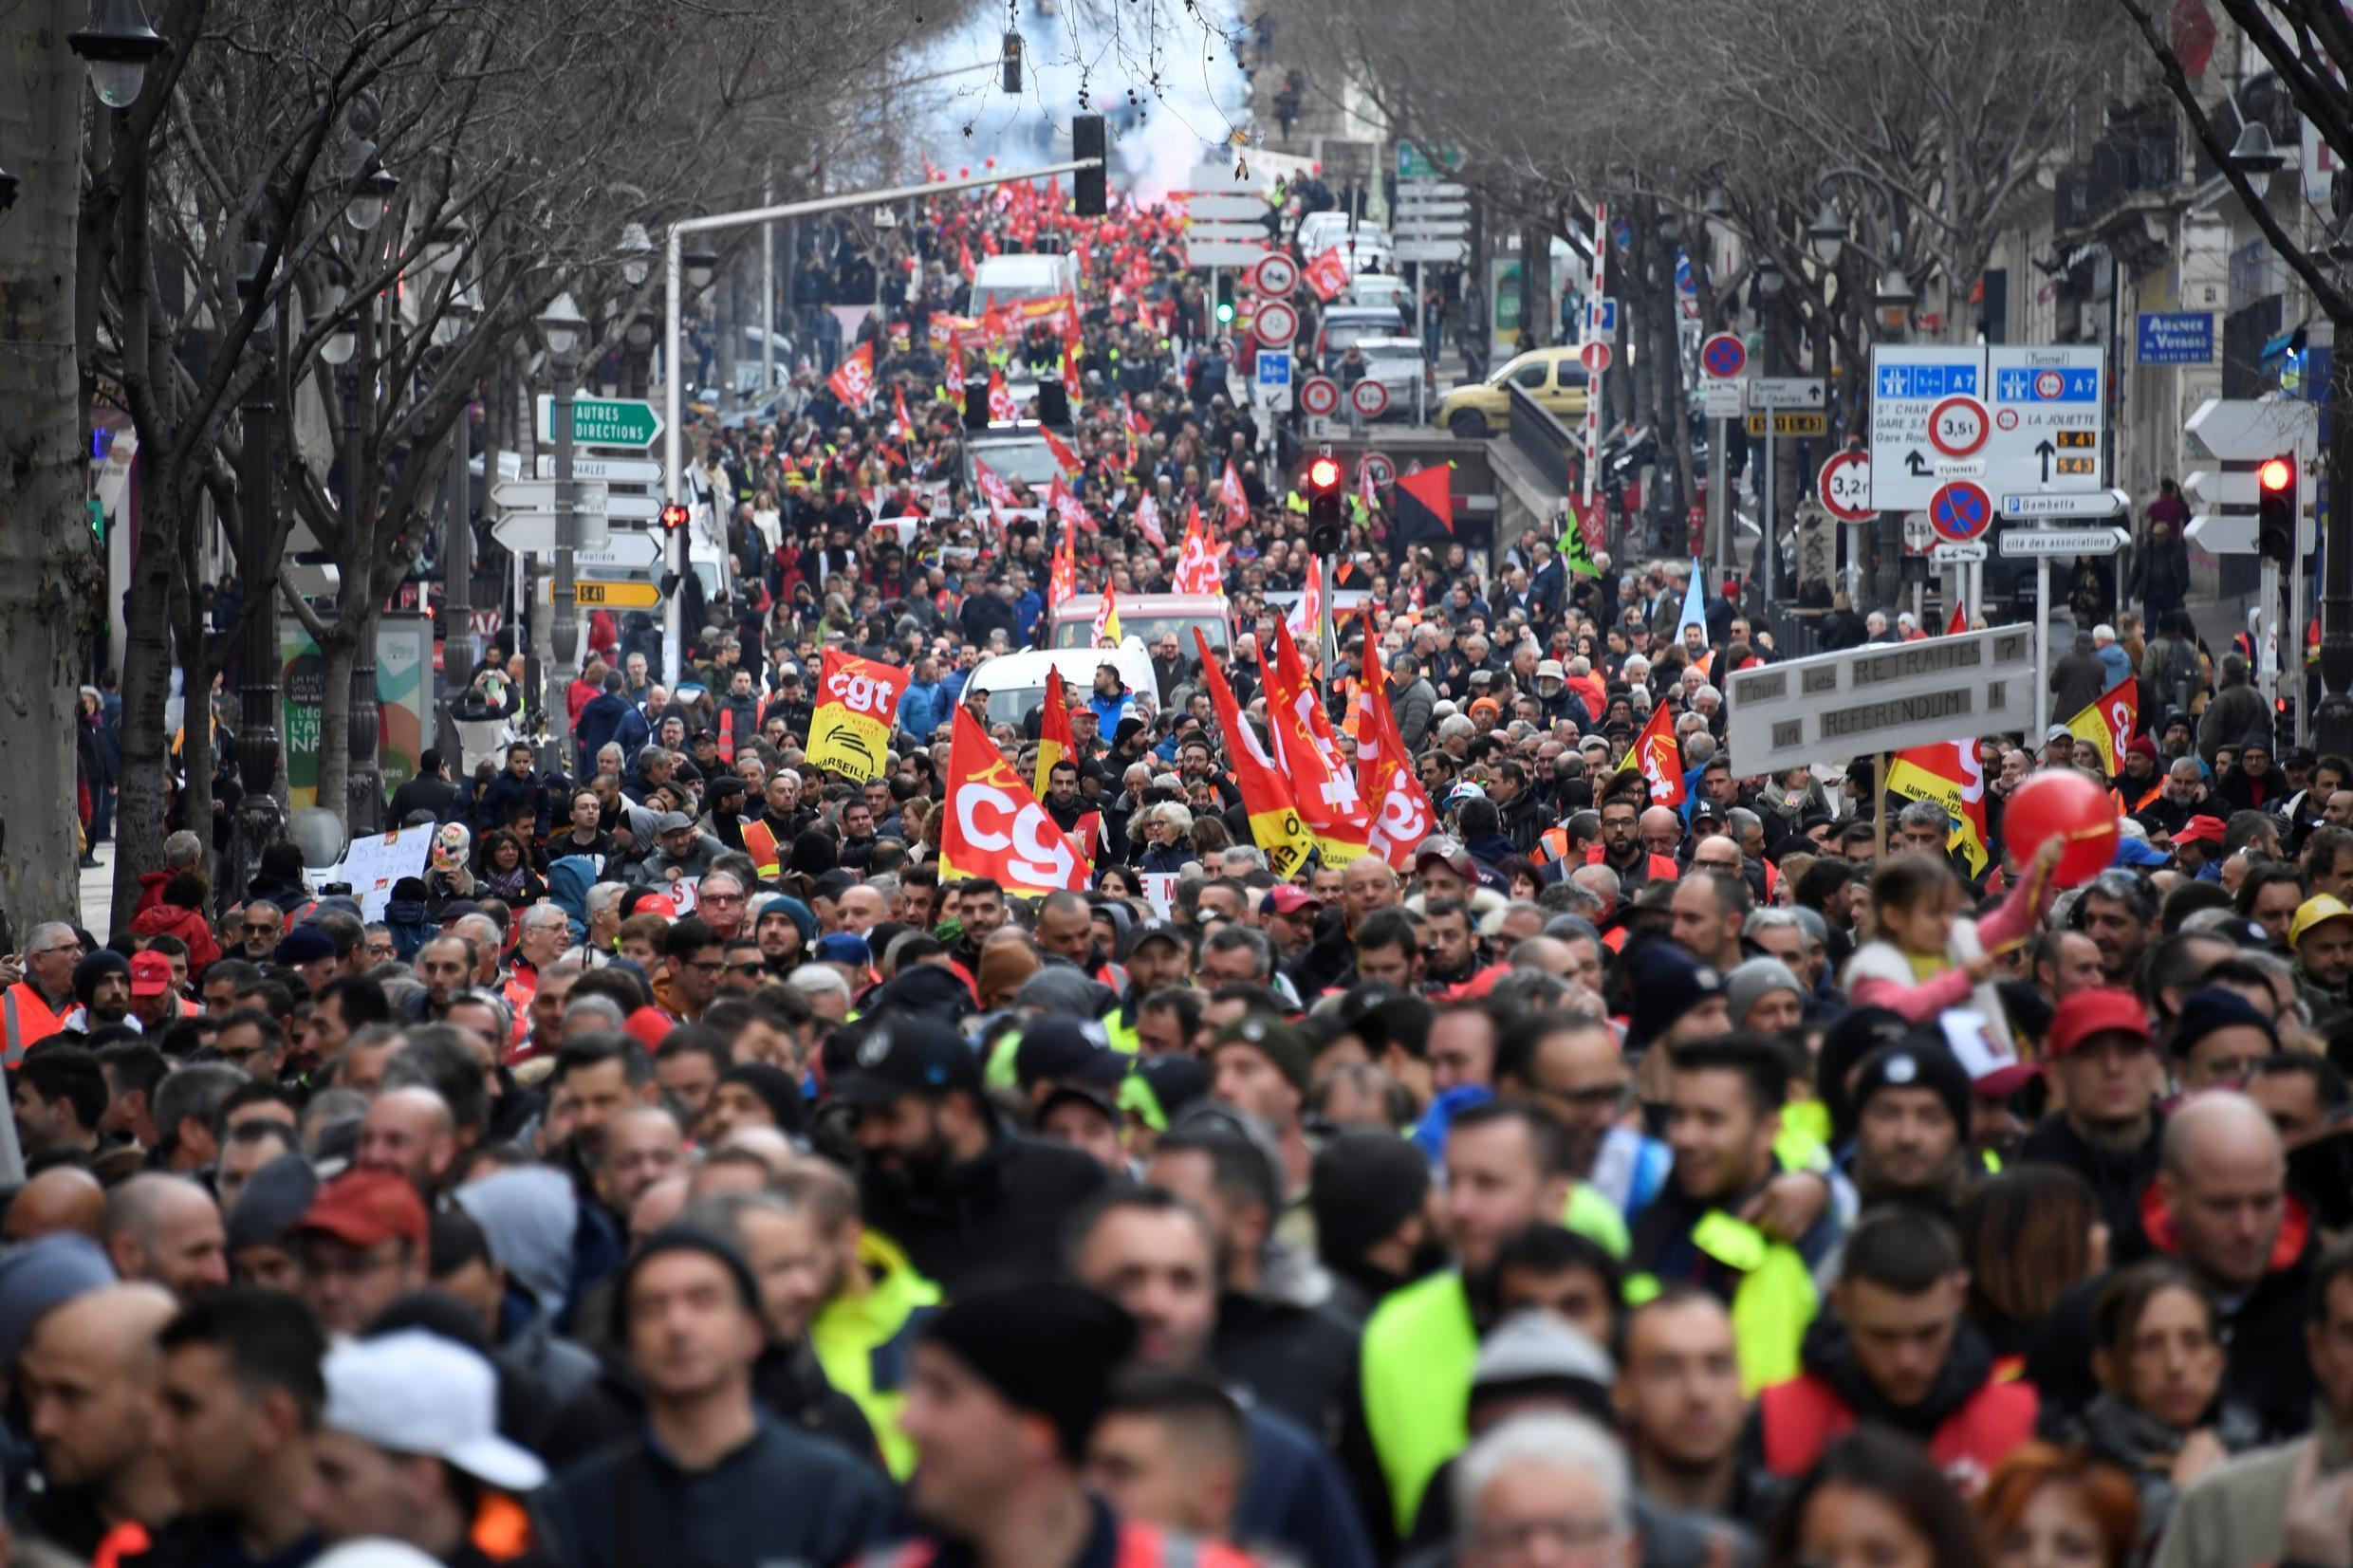 Participants in the demonstration of January 24, 2020, in Marseille, against the pension reform.